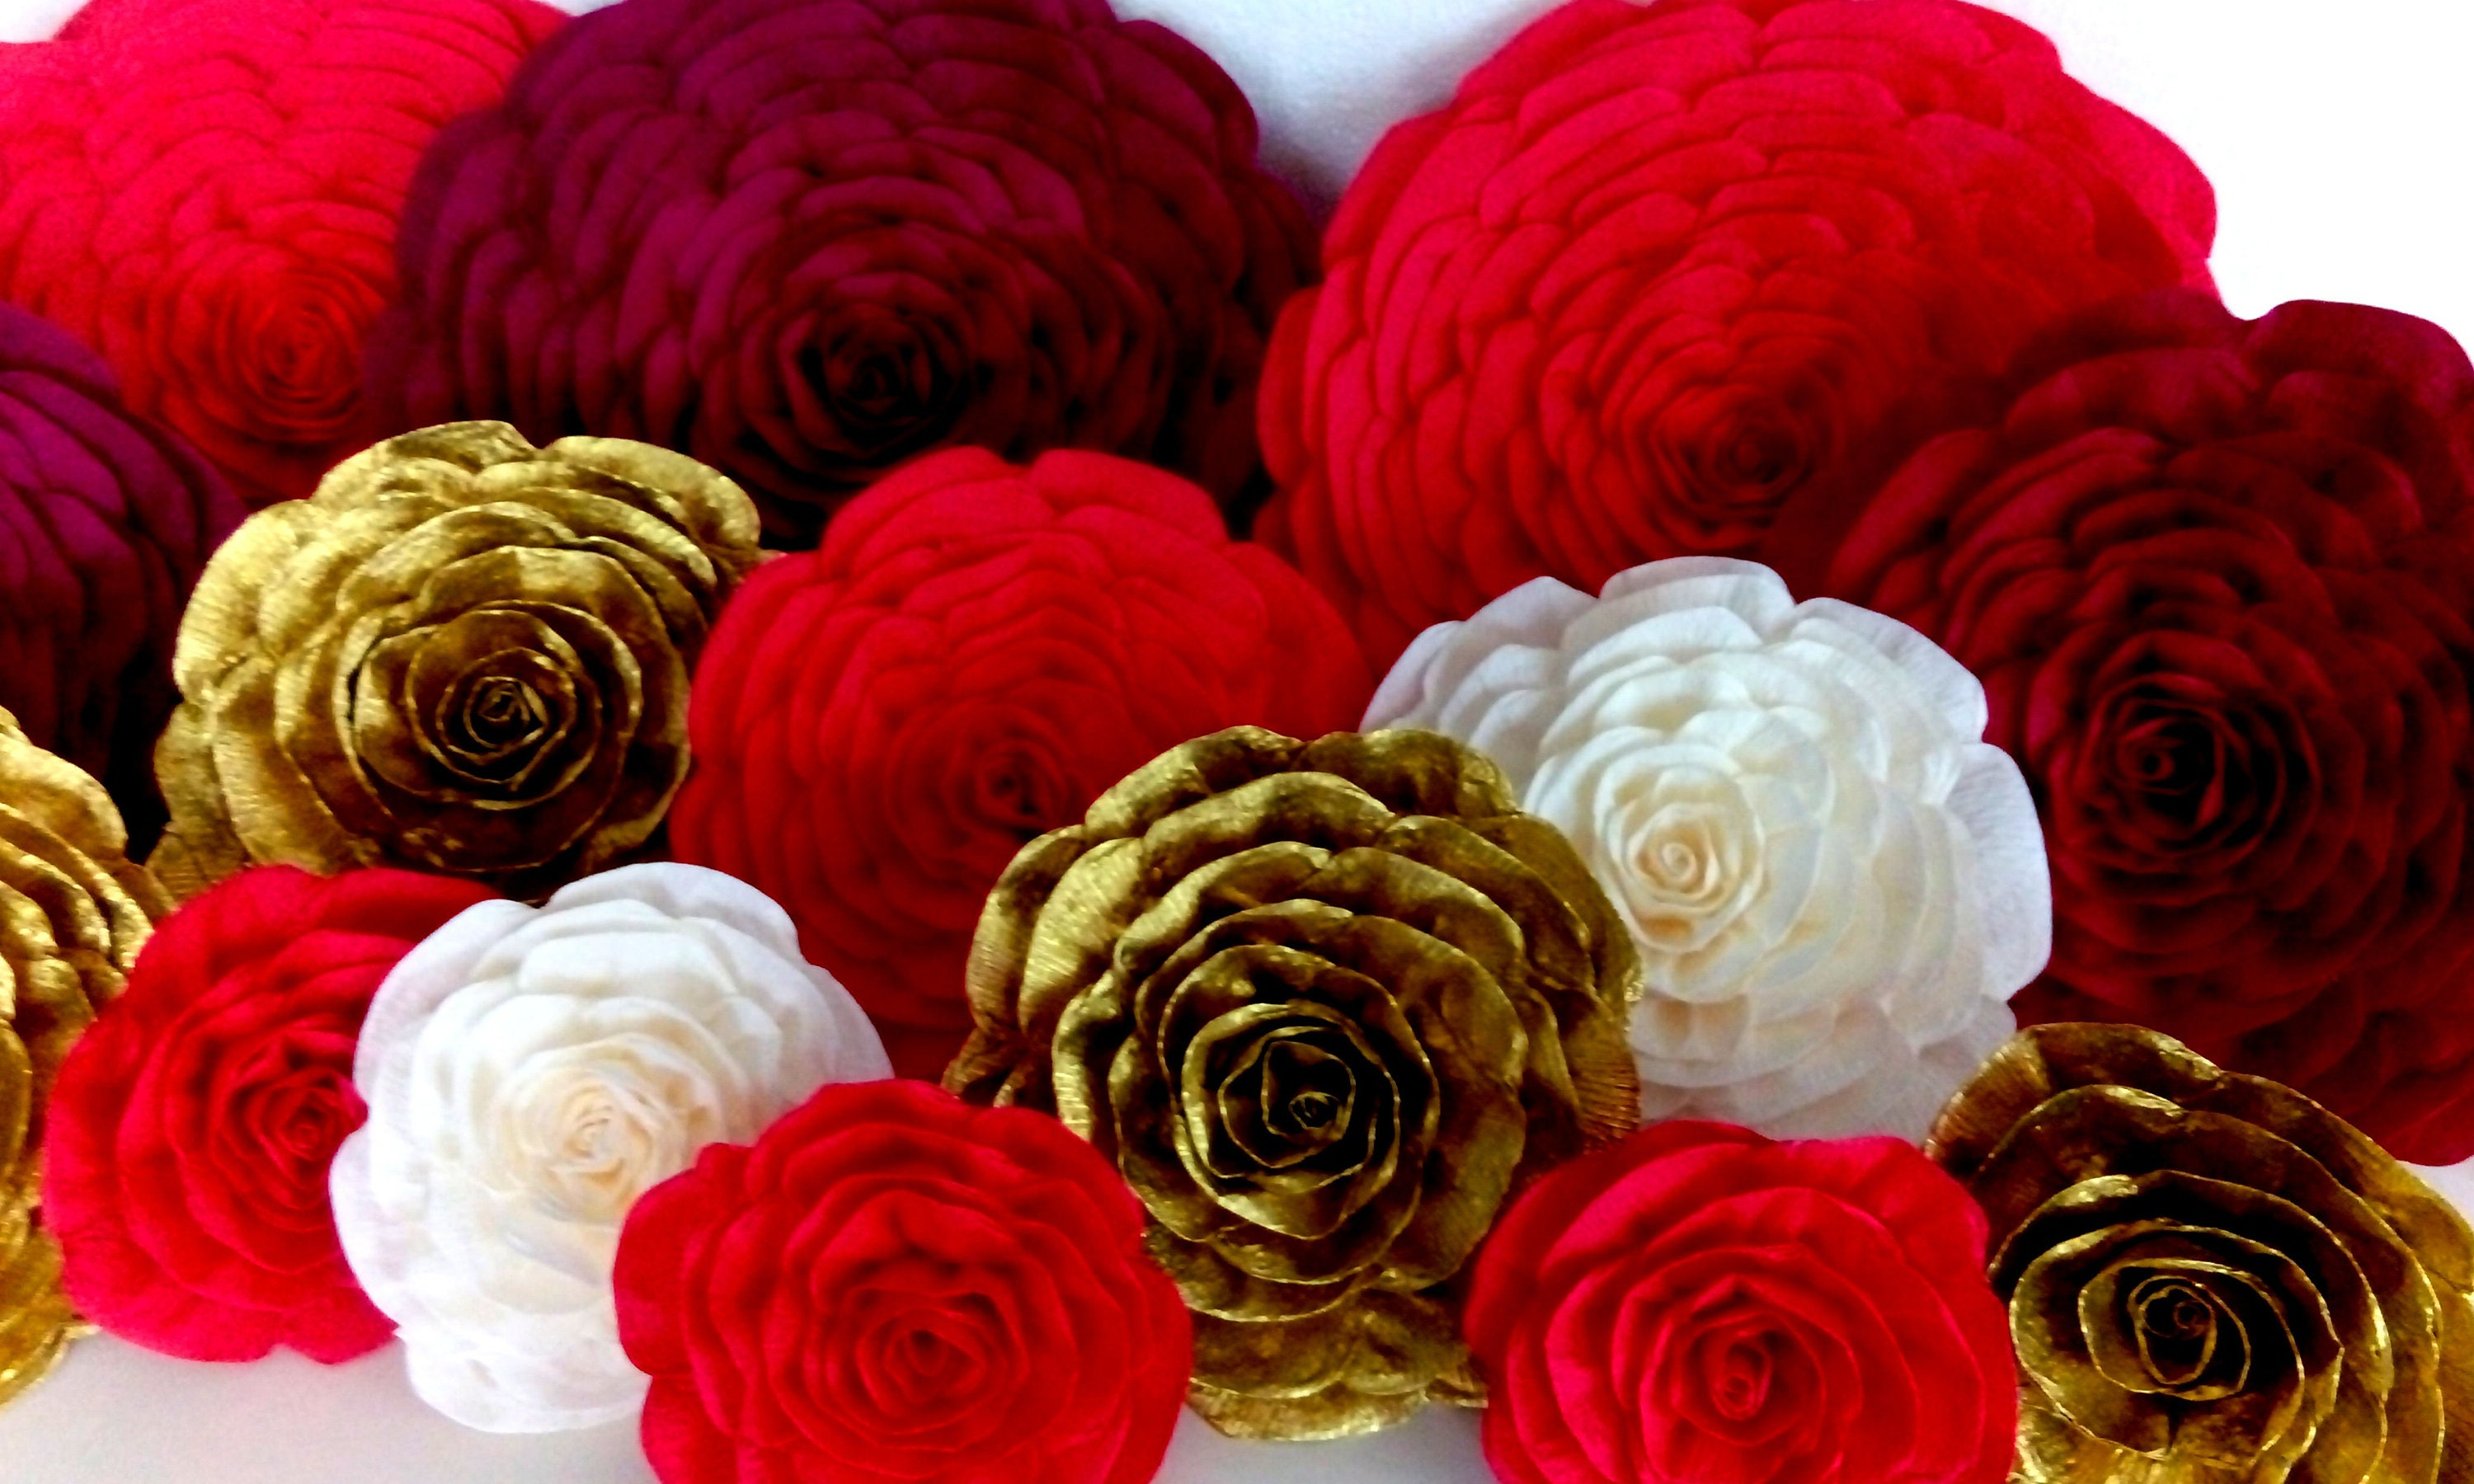 Royal Red Gold Burgundy 12 Large Paper Flowers Wall Decor Sangeet Bridal Baby Shower Indian Wedding Party Photo Backdrop Elena Avalor